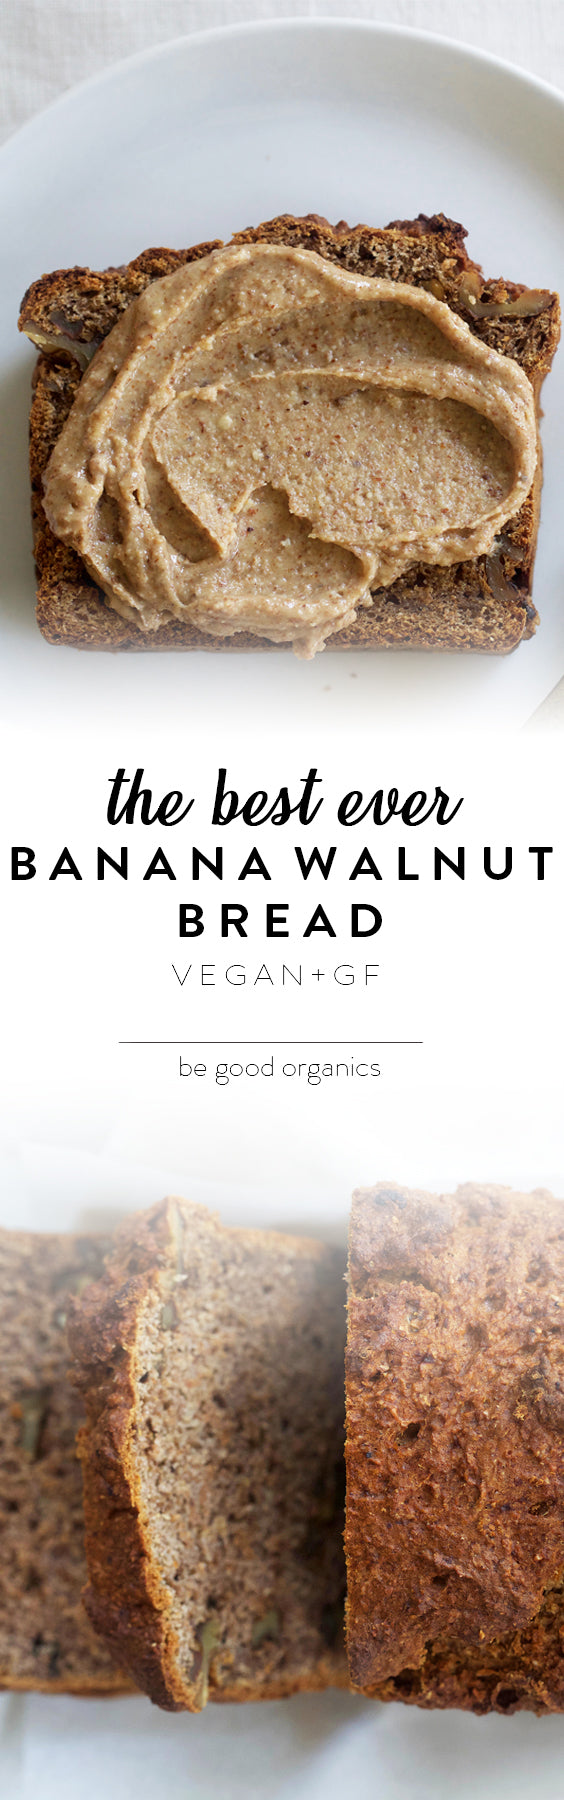 Banana Walnut Bread - Be Good Organics